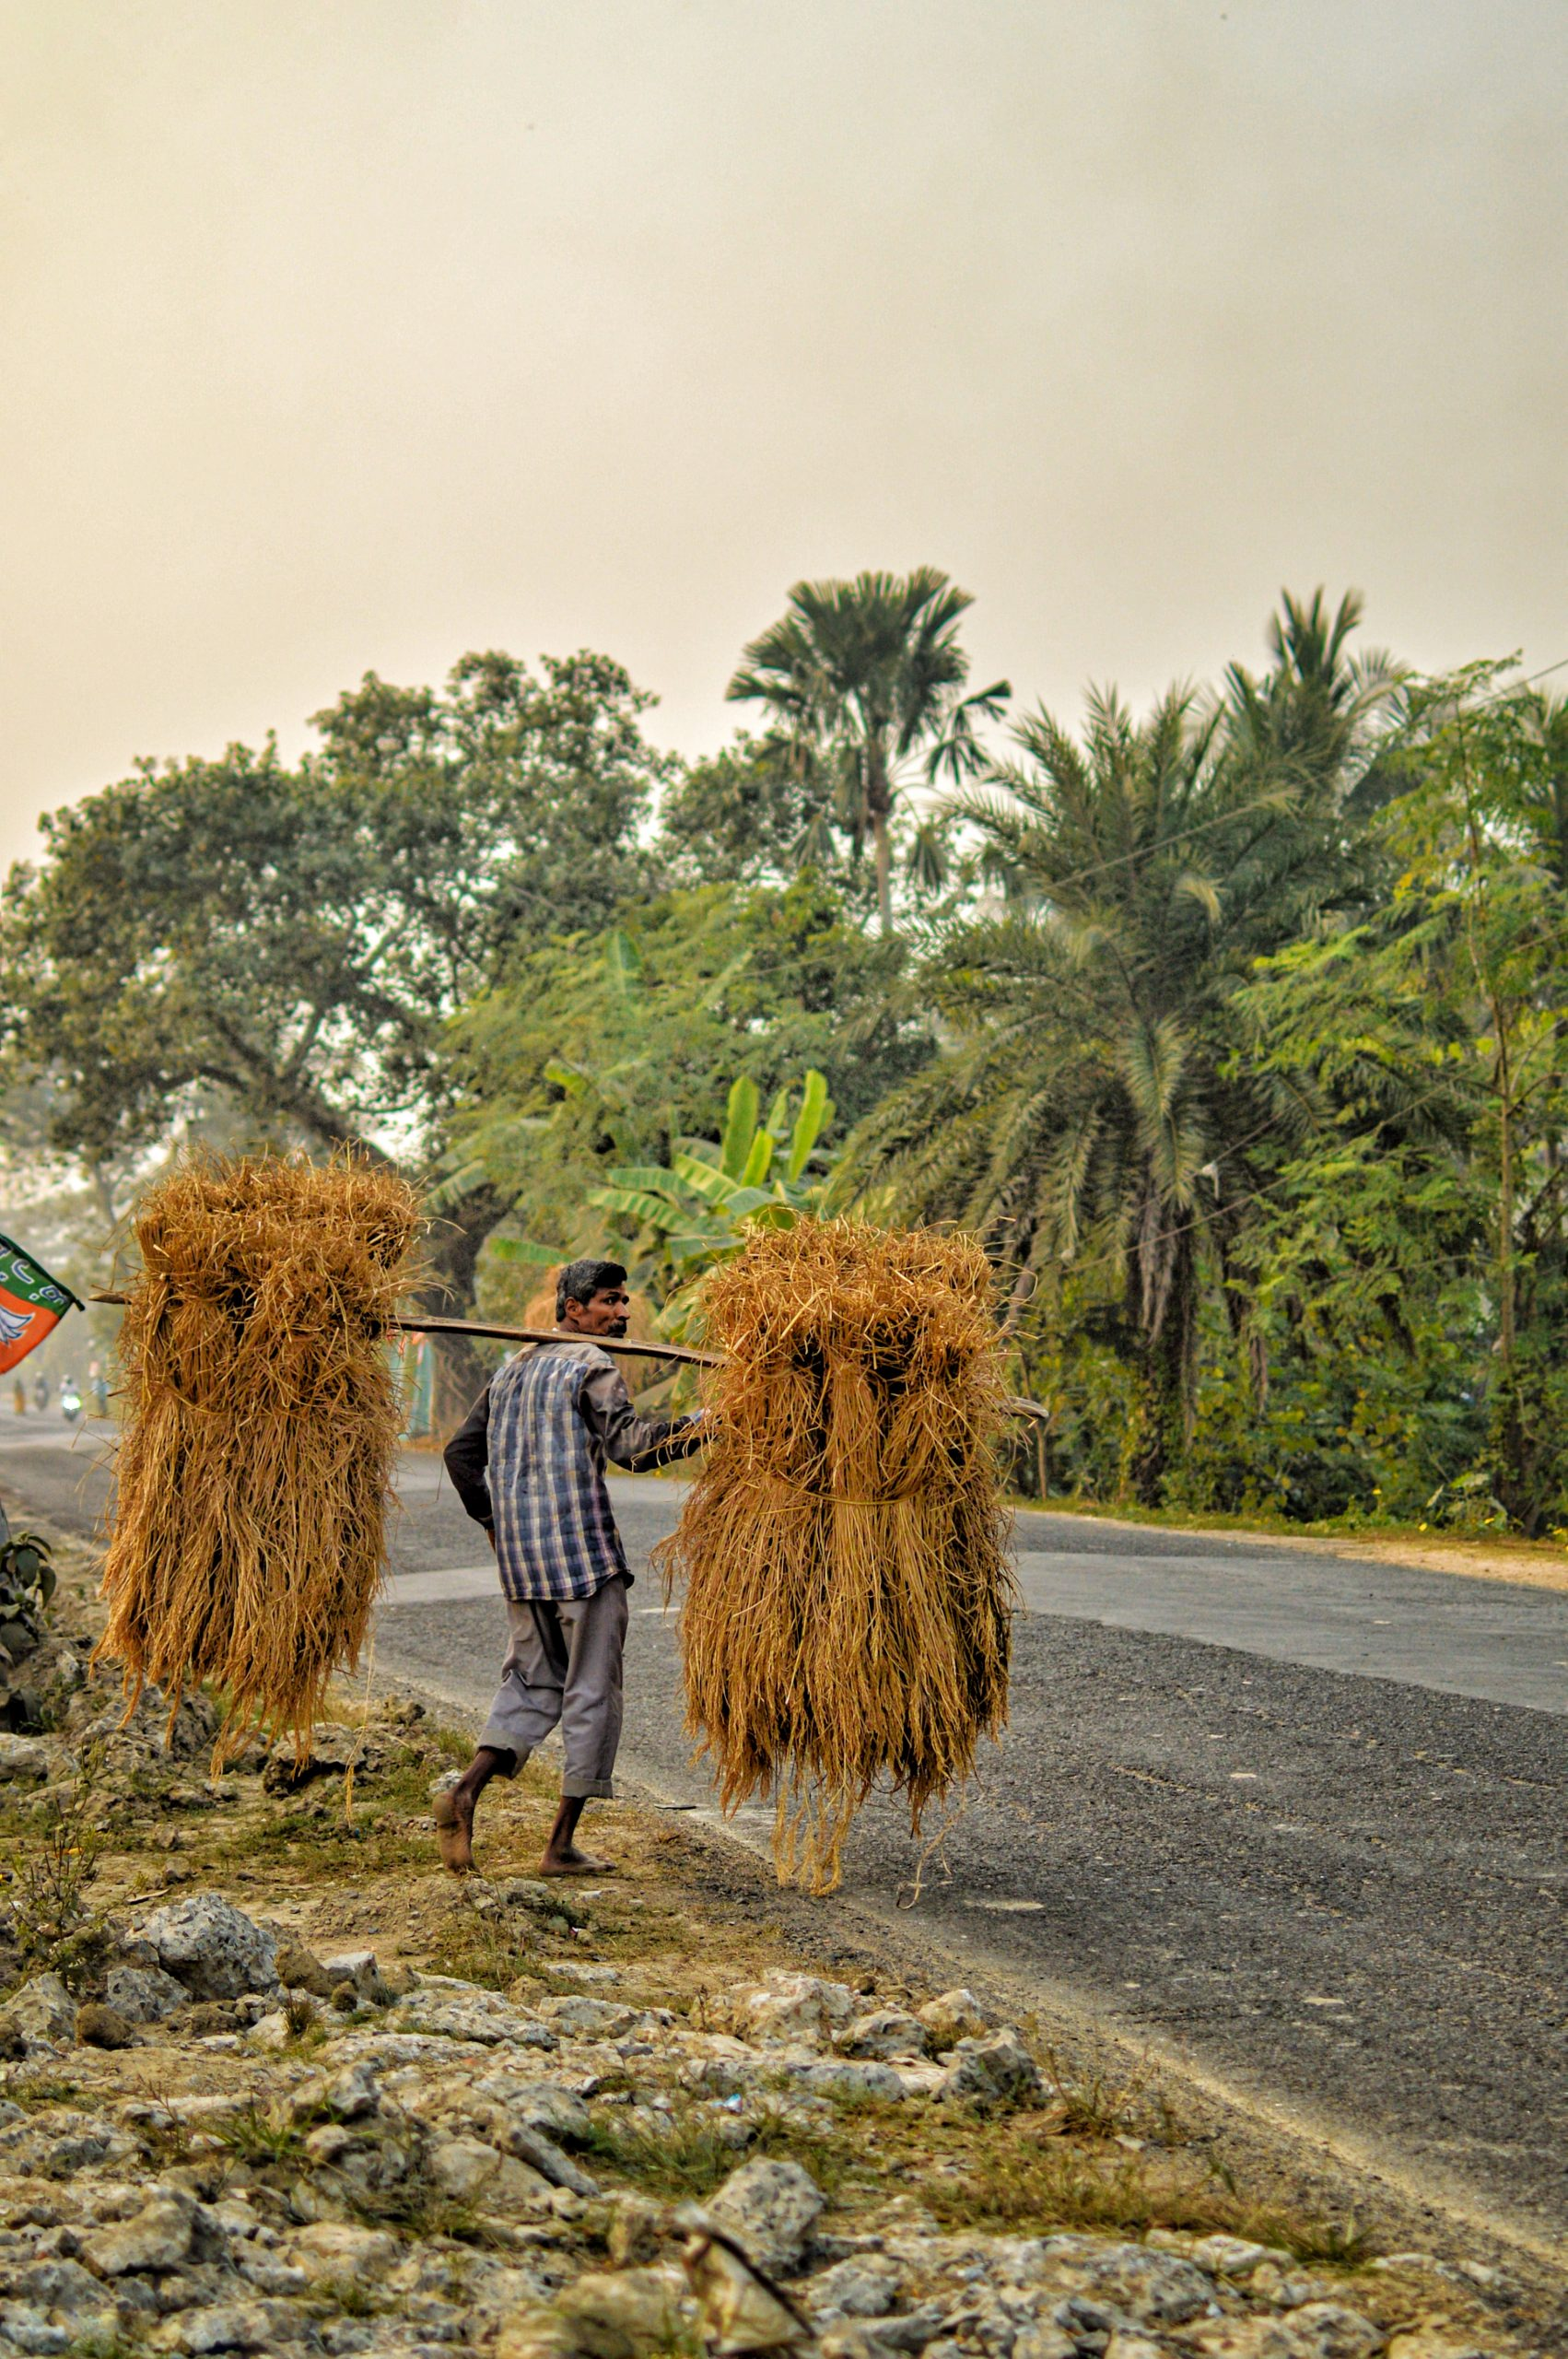 A farmer carrying dry crops on his shoulder